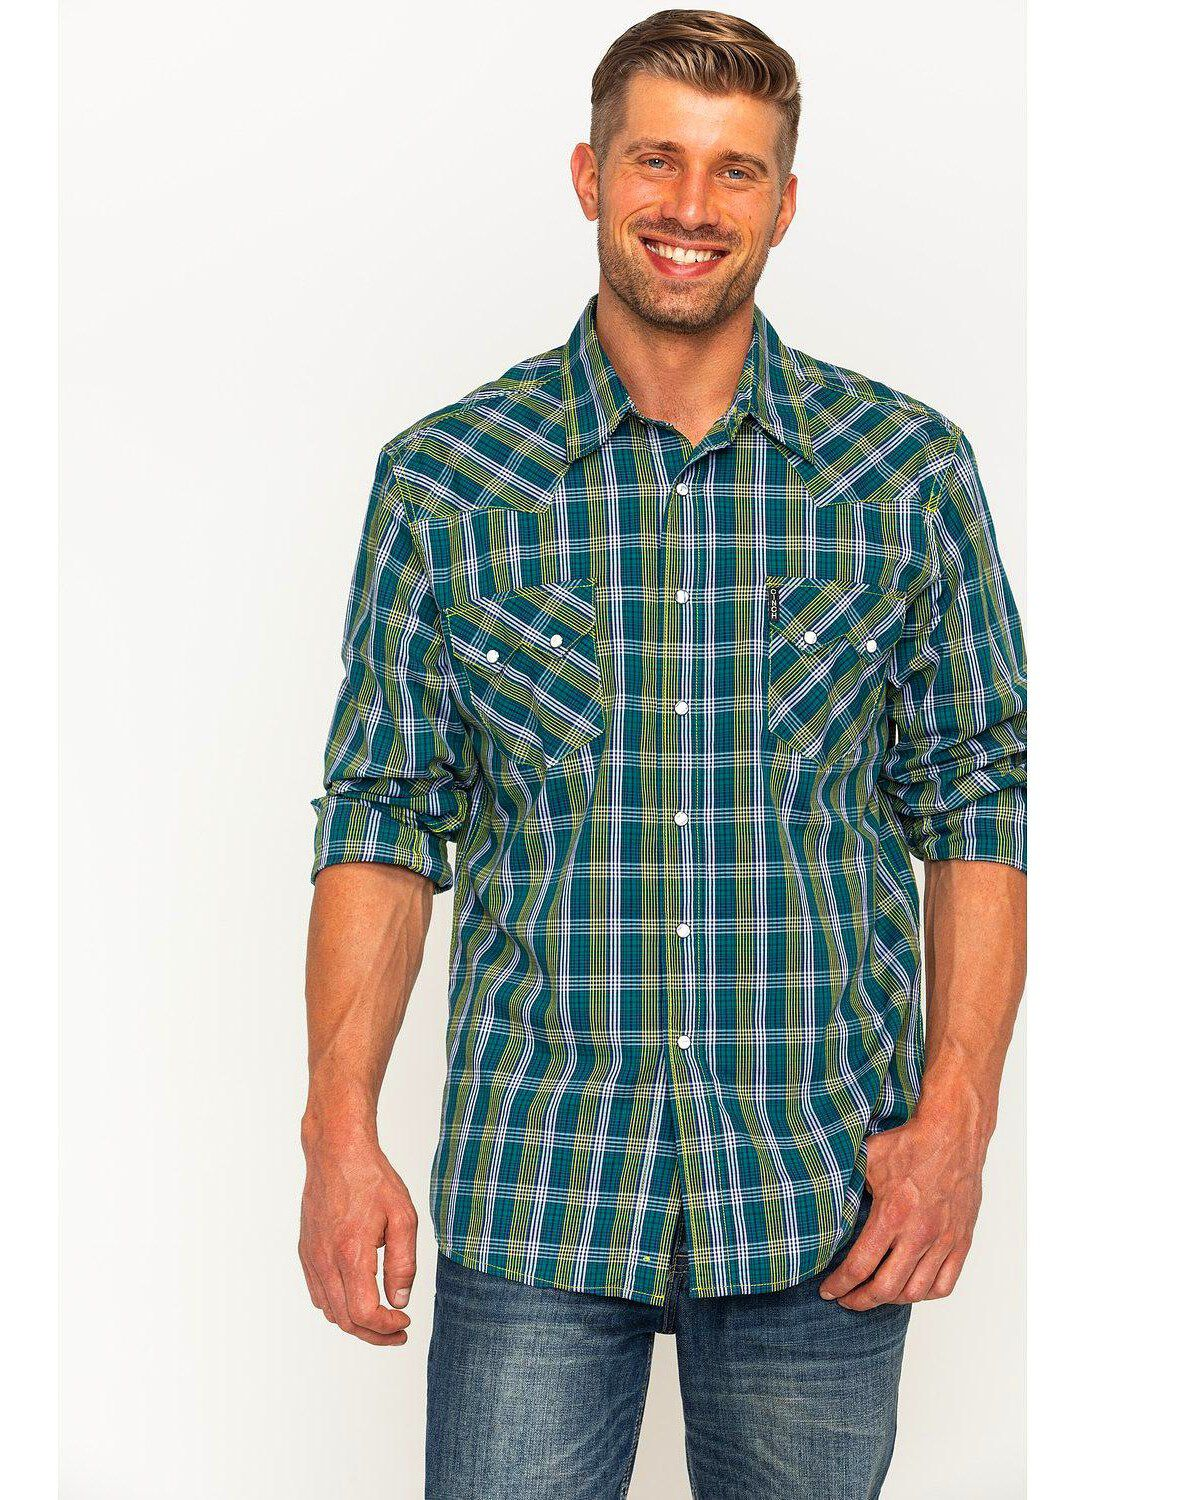 Men's Country Shirts on Sale